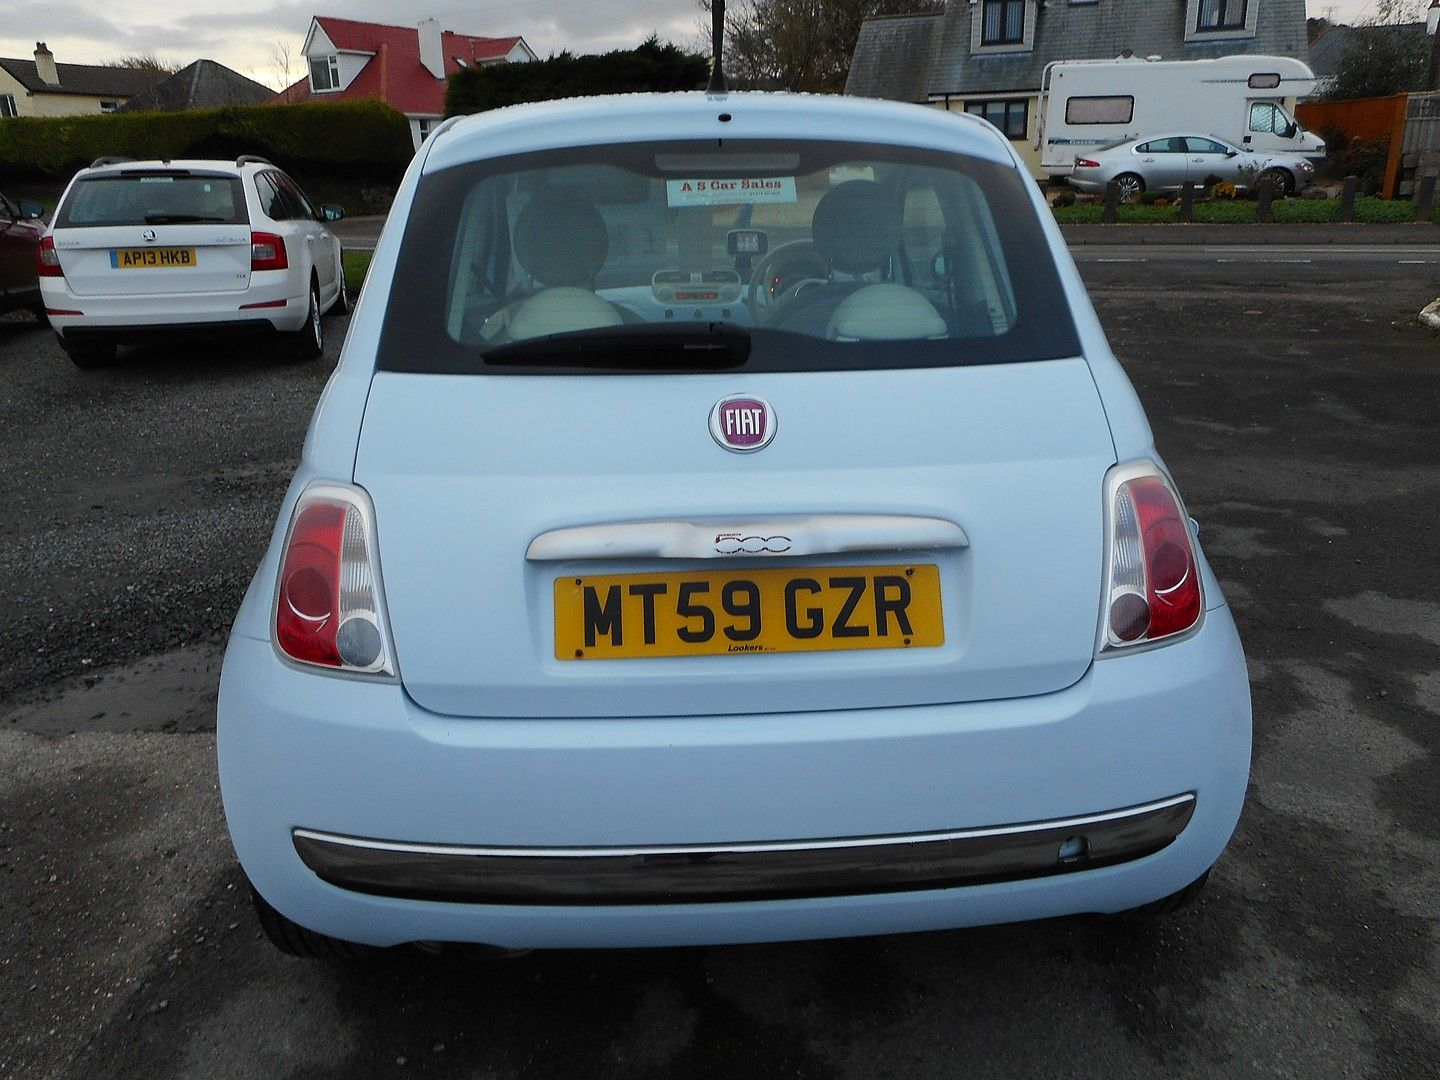 FIAT 500 1.2i Lounge (2010) - Picture 18